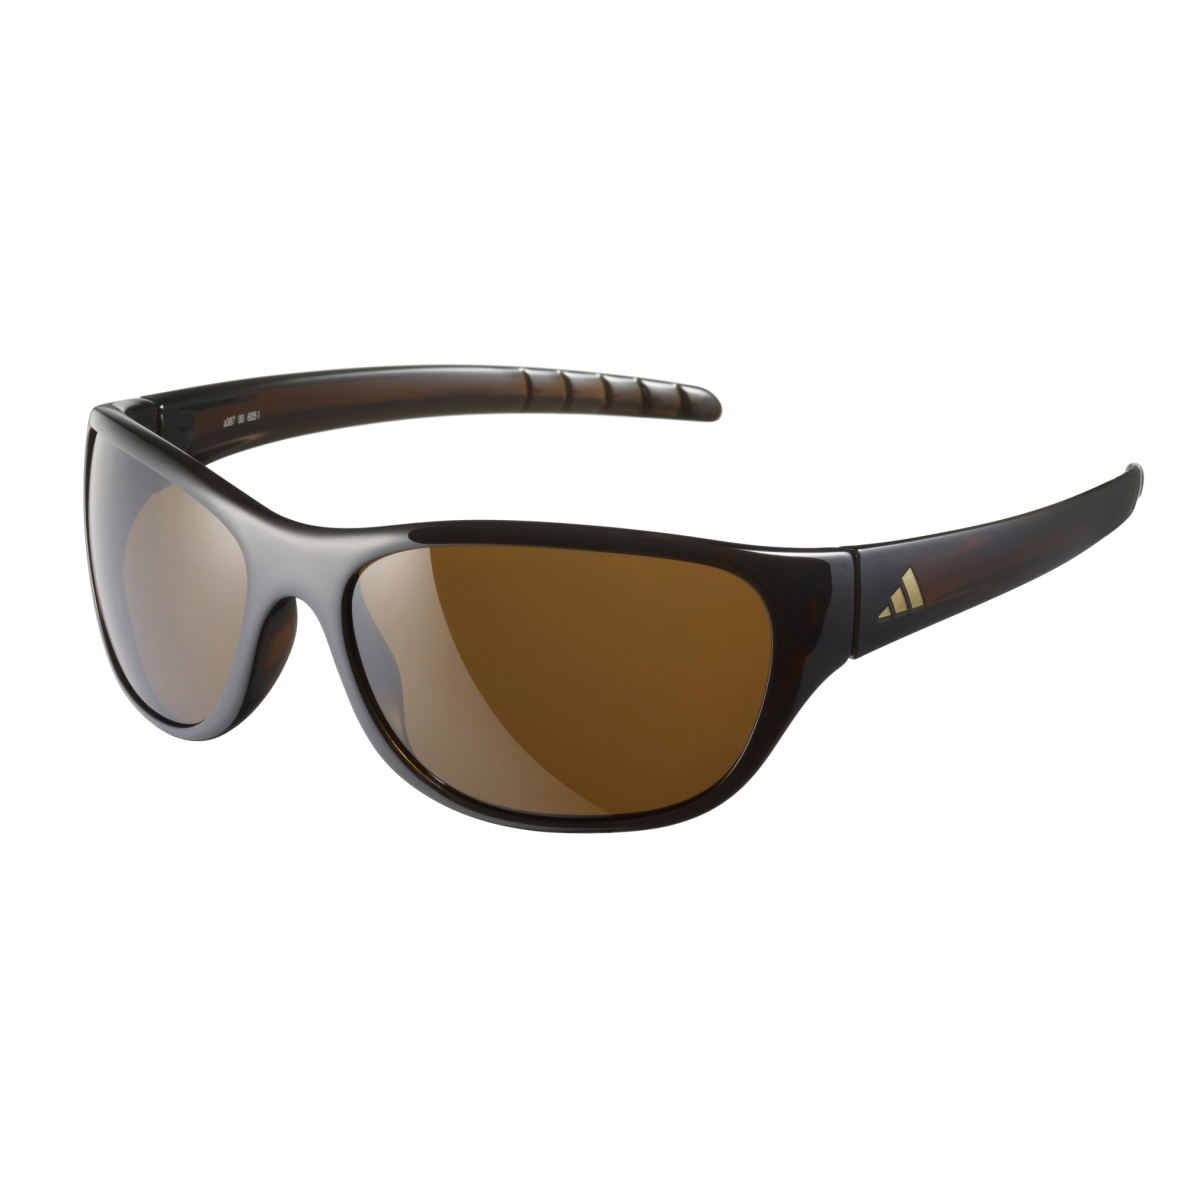 Adidas Kasoto Sunglasses - Brown